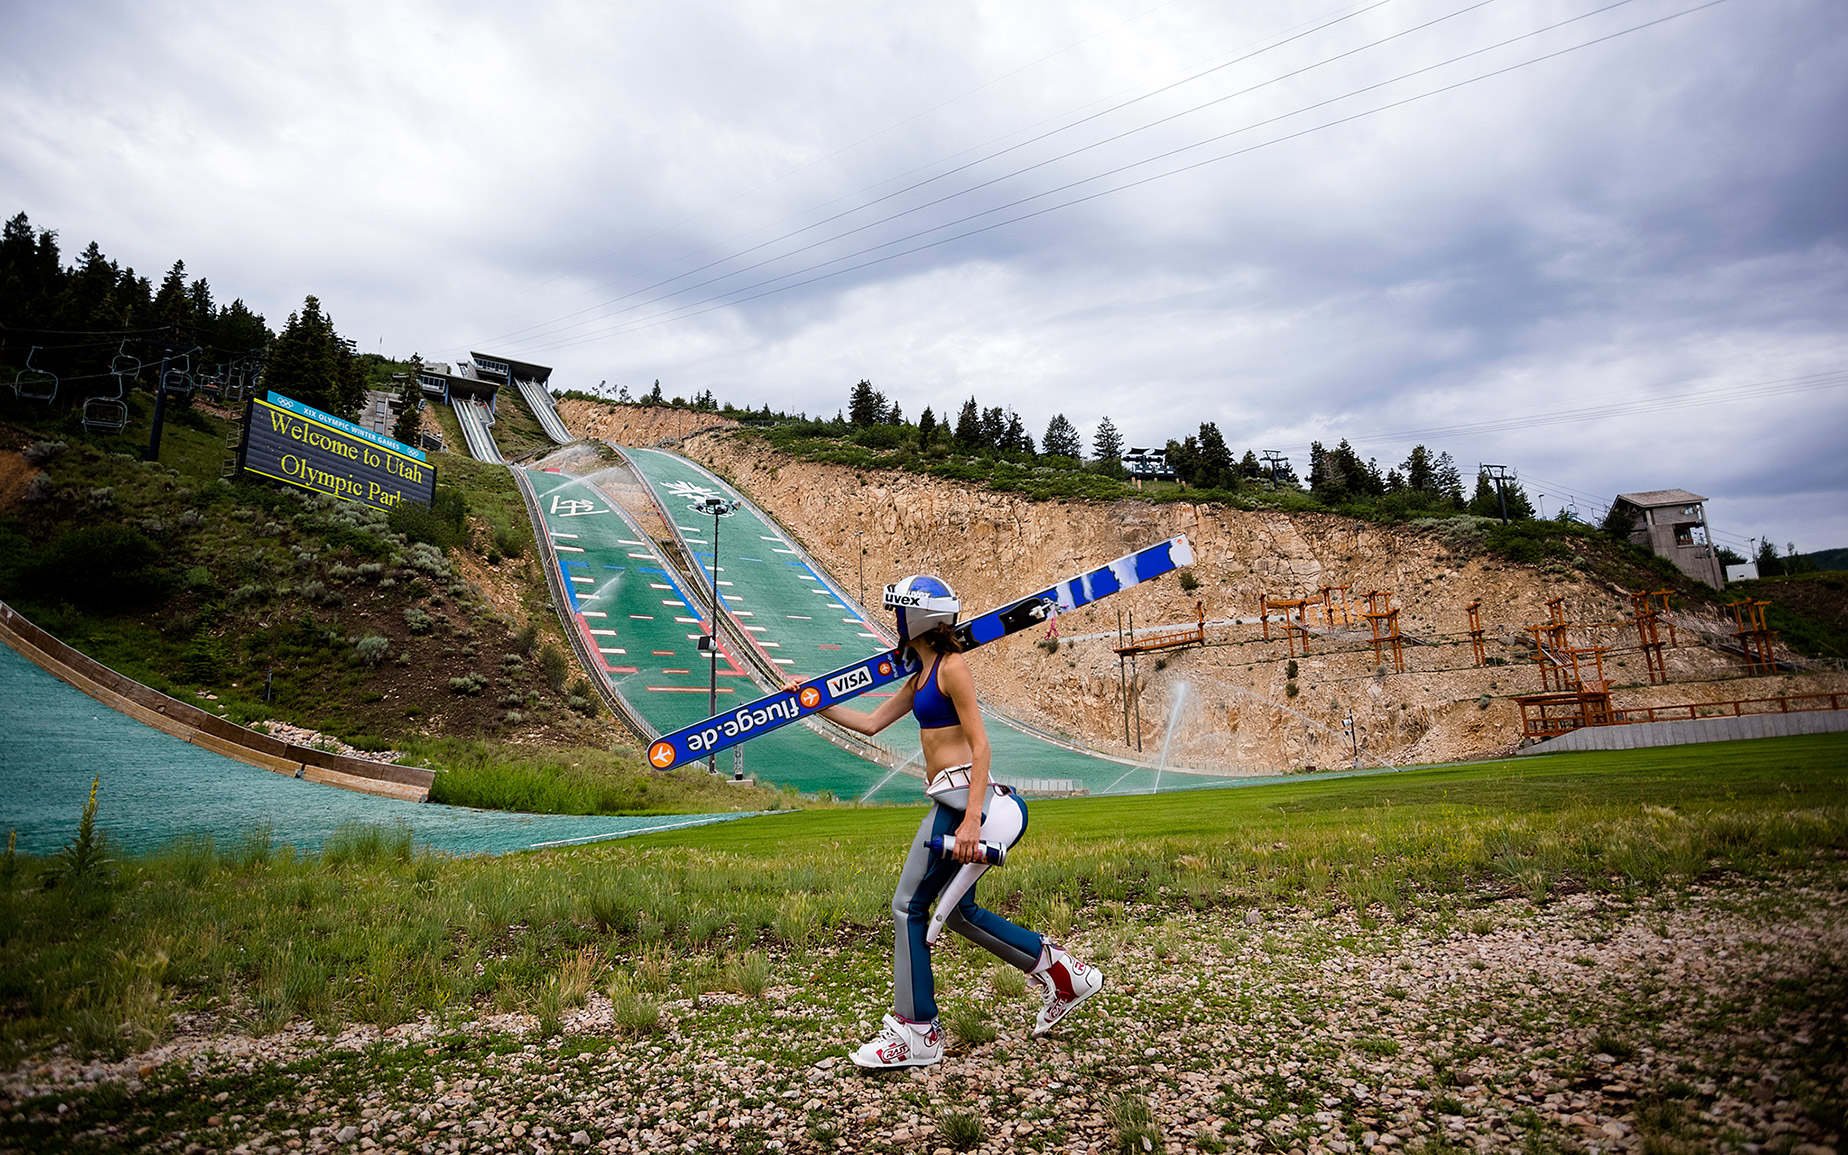 Total Access: U.S. women's ski jumping team